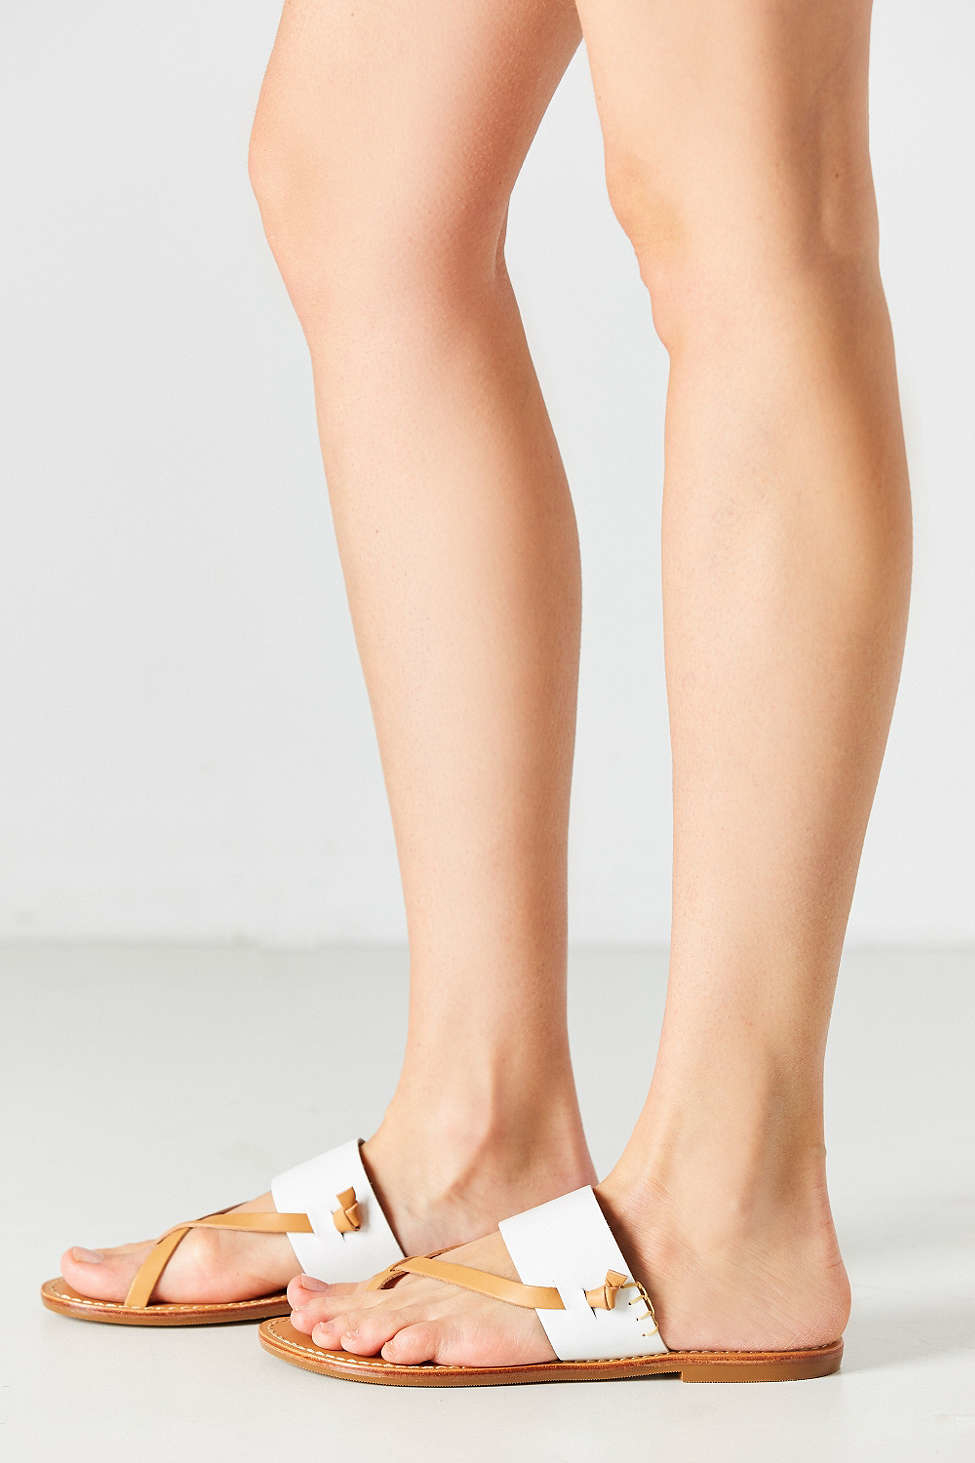 f524a4aca0d5f Gallery. Previously sold at  Urban Outfitters · Women s Jeweled Flat Sandals  ...